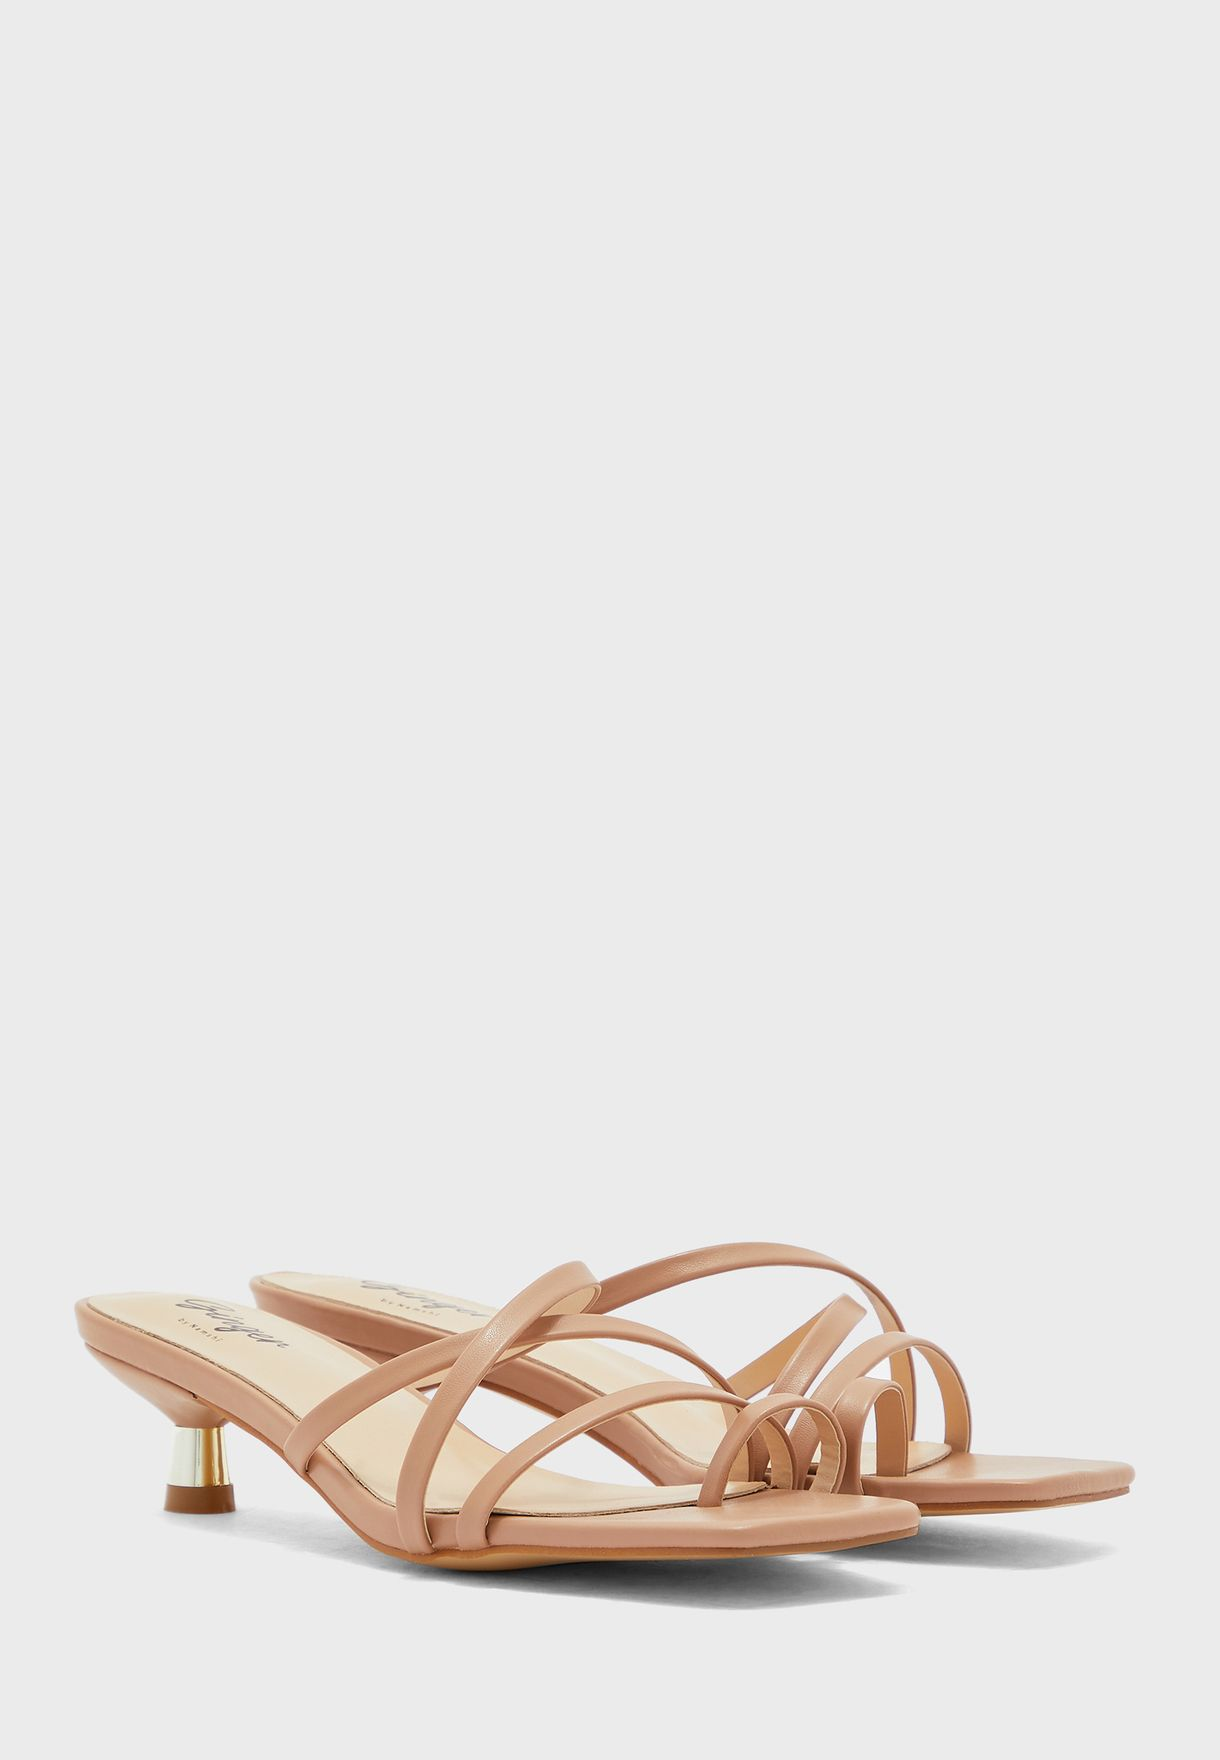 Strappy Square Toe Mule With Gold Kitten Heel